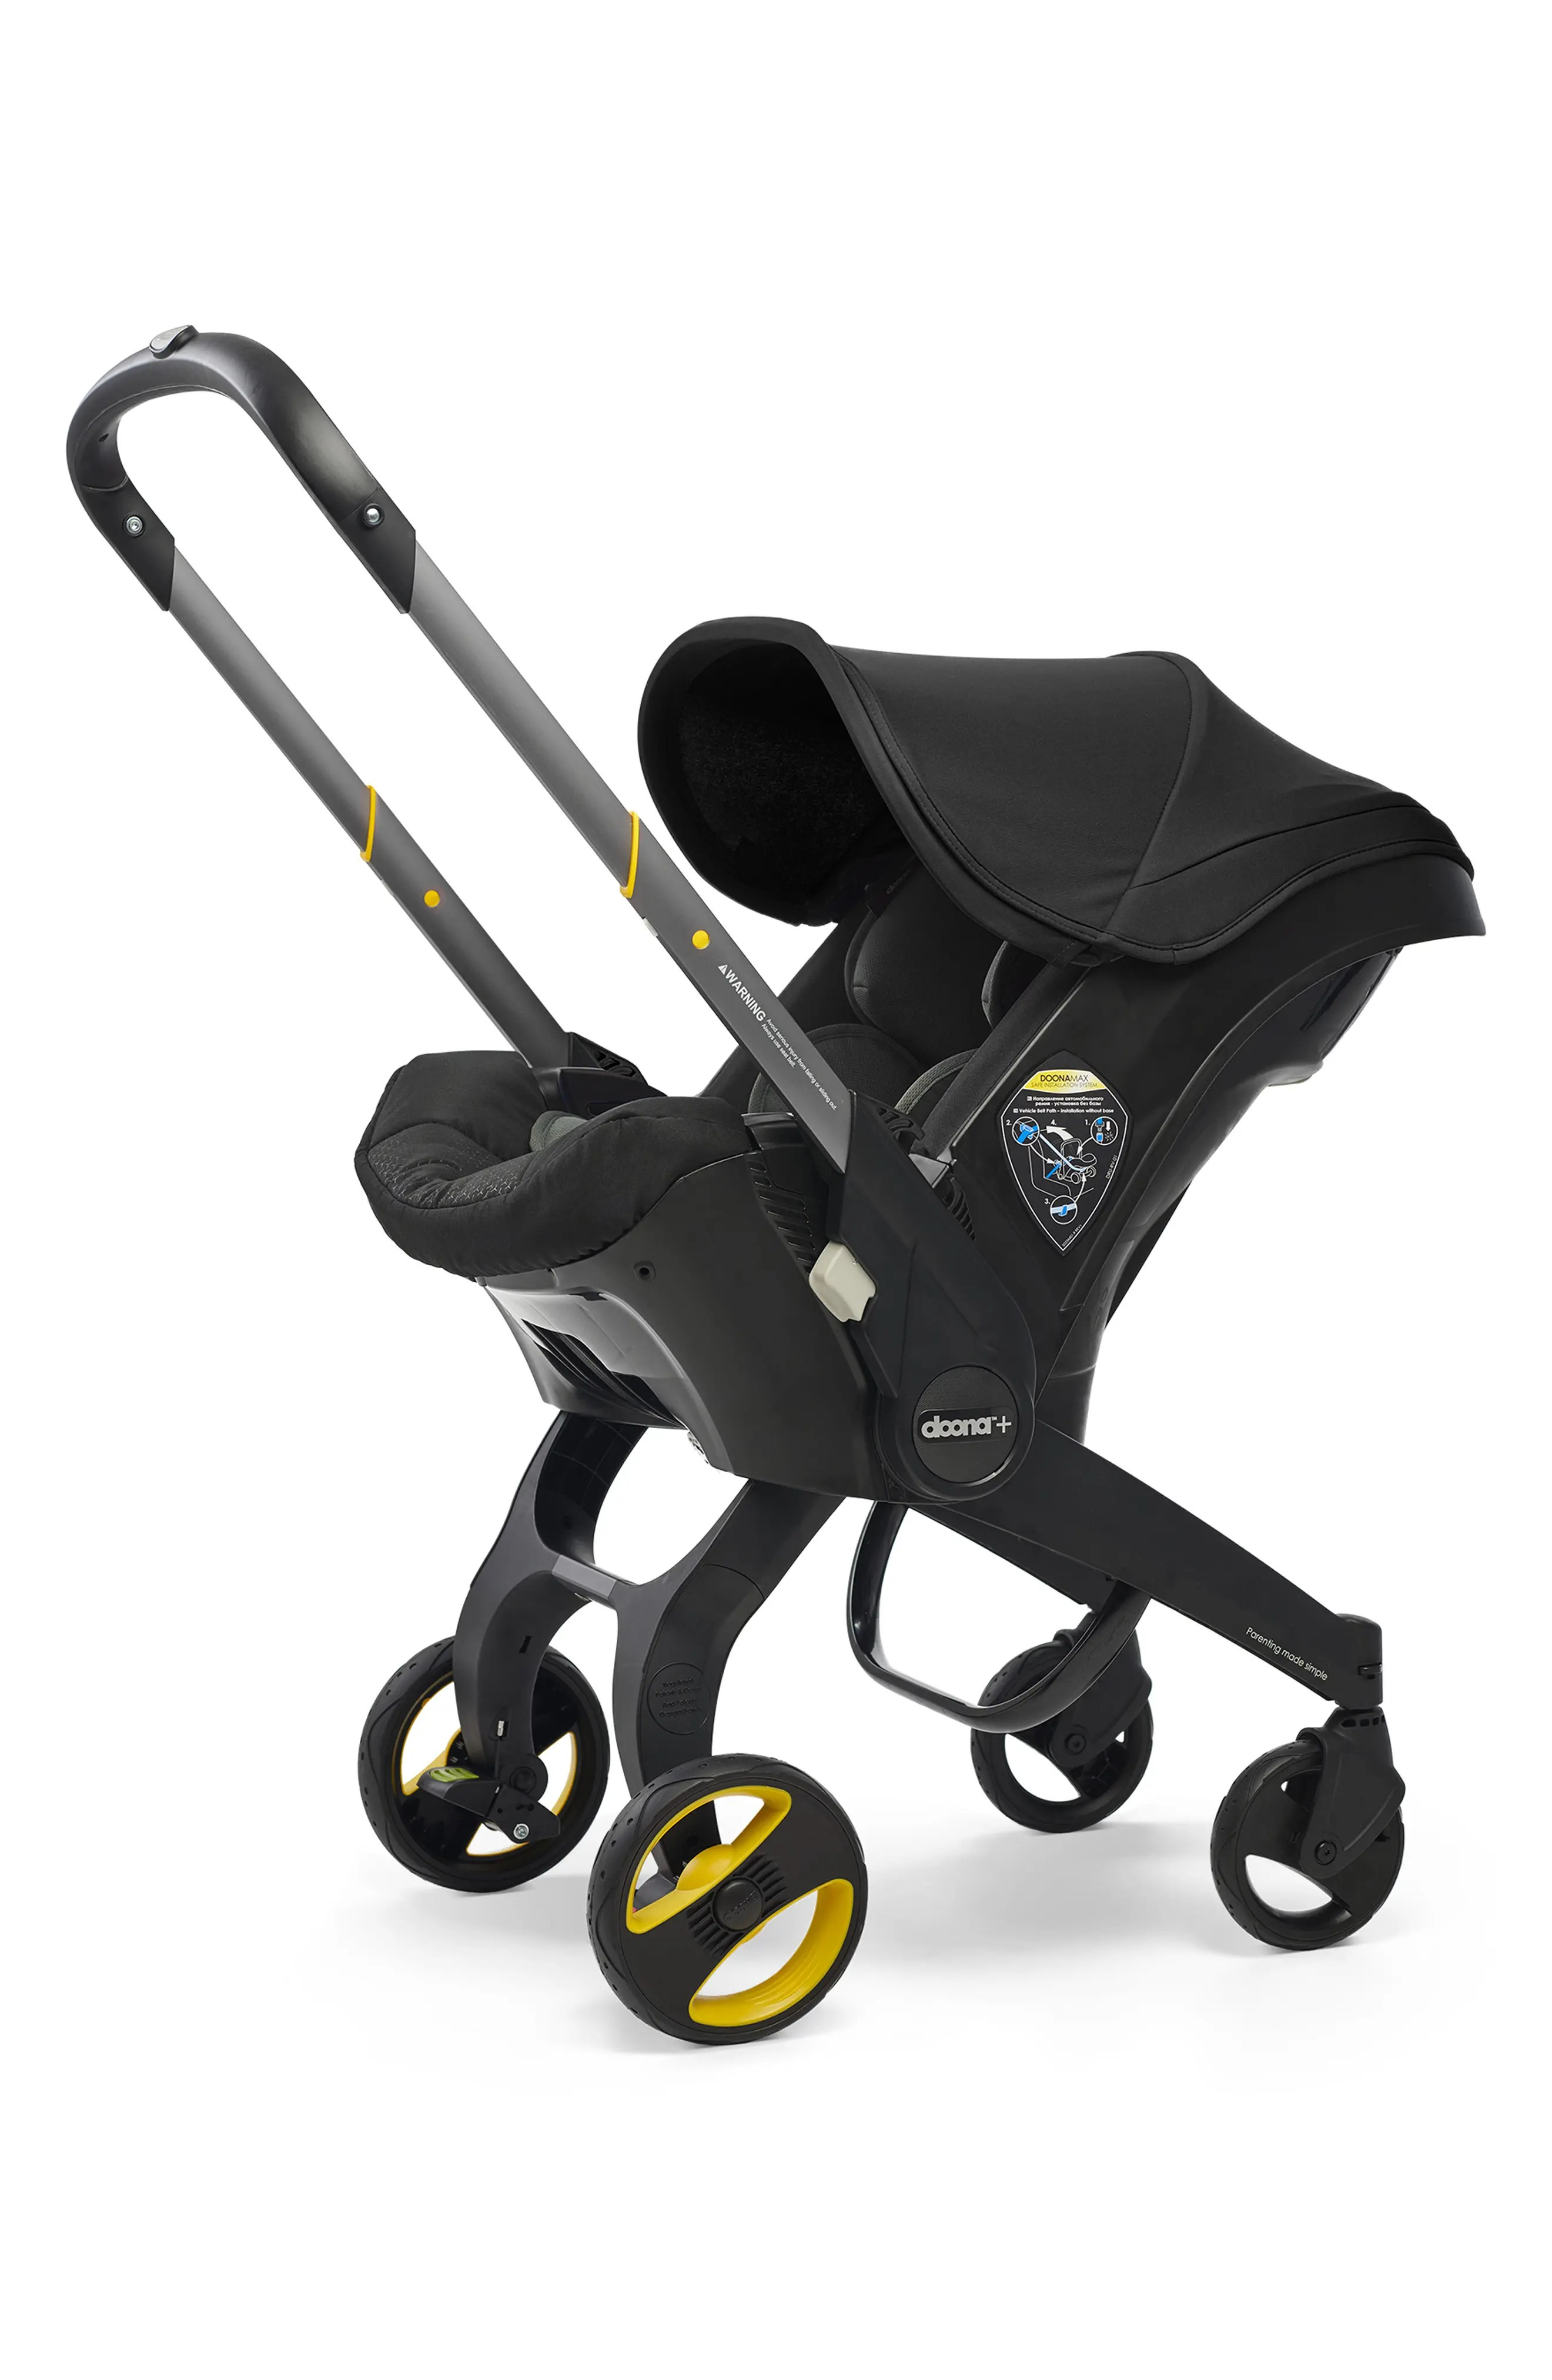 Travel System With Convertible Car Seat Convertible Infant Car Seat Compact Stroller System With Base